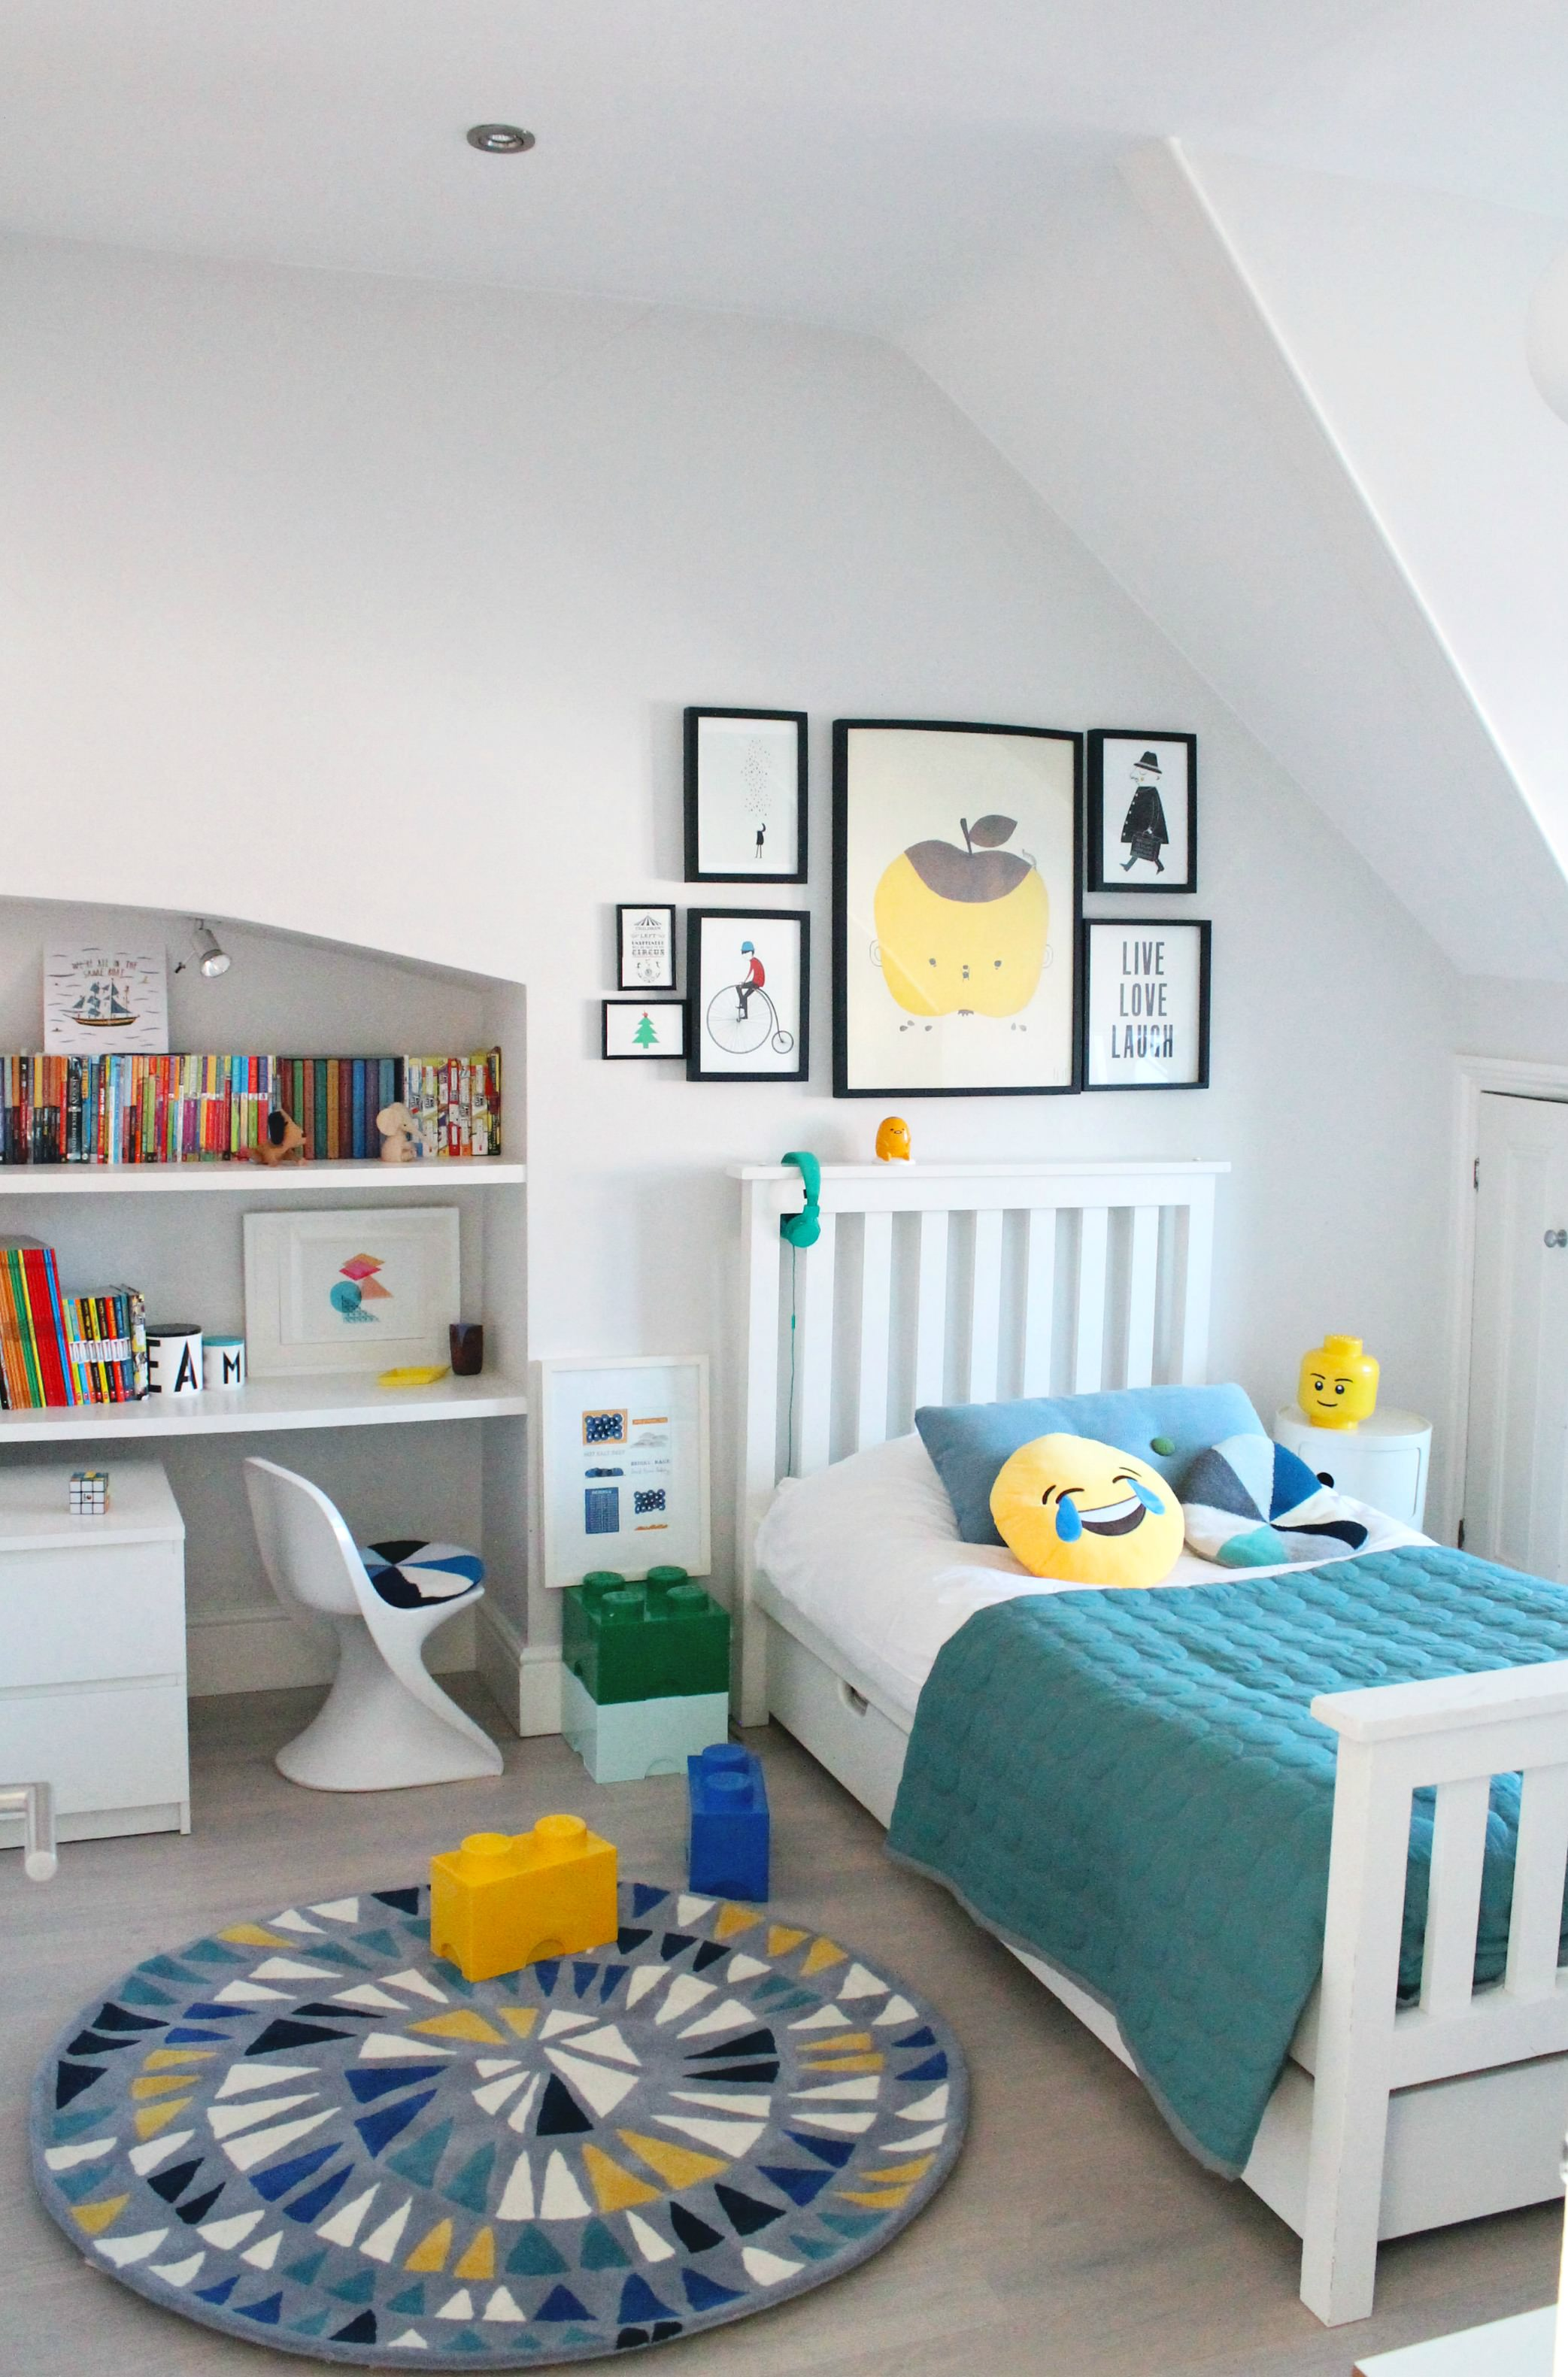 Littlebigbell Boy S Bedroom Ideas Decorating With A Rug